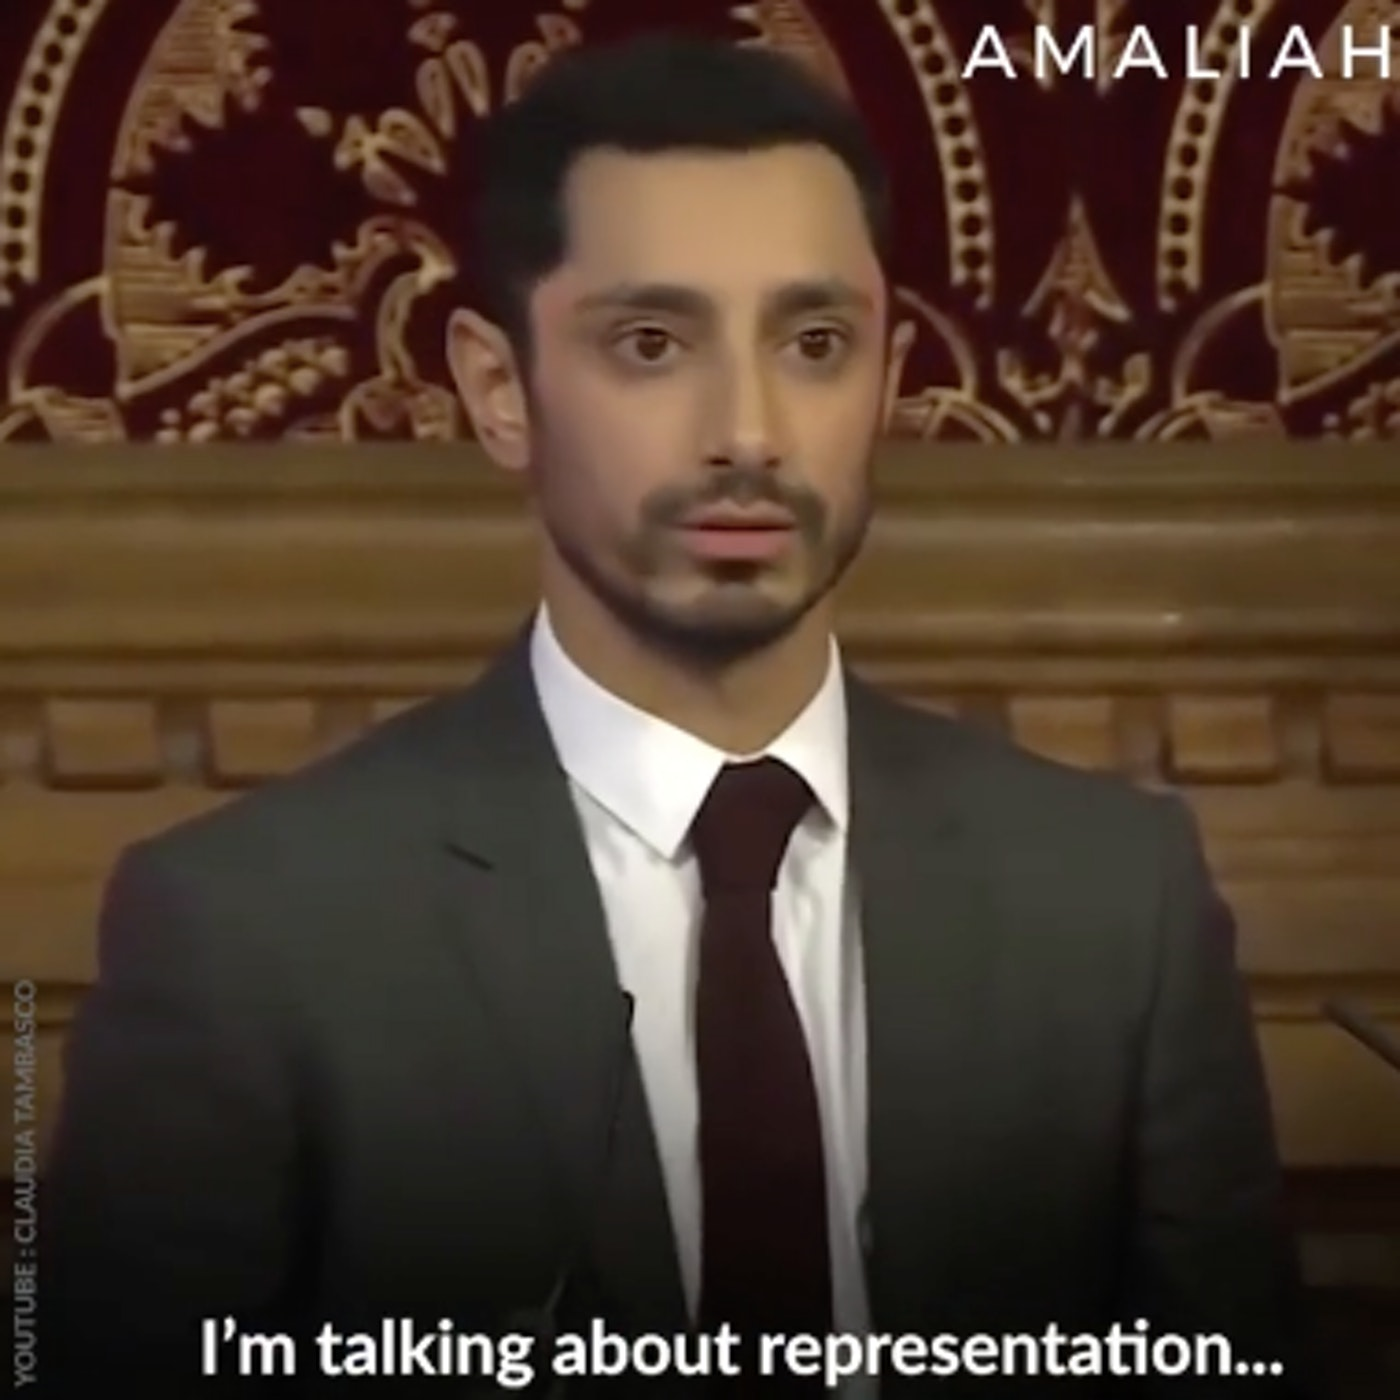 rizahmed